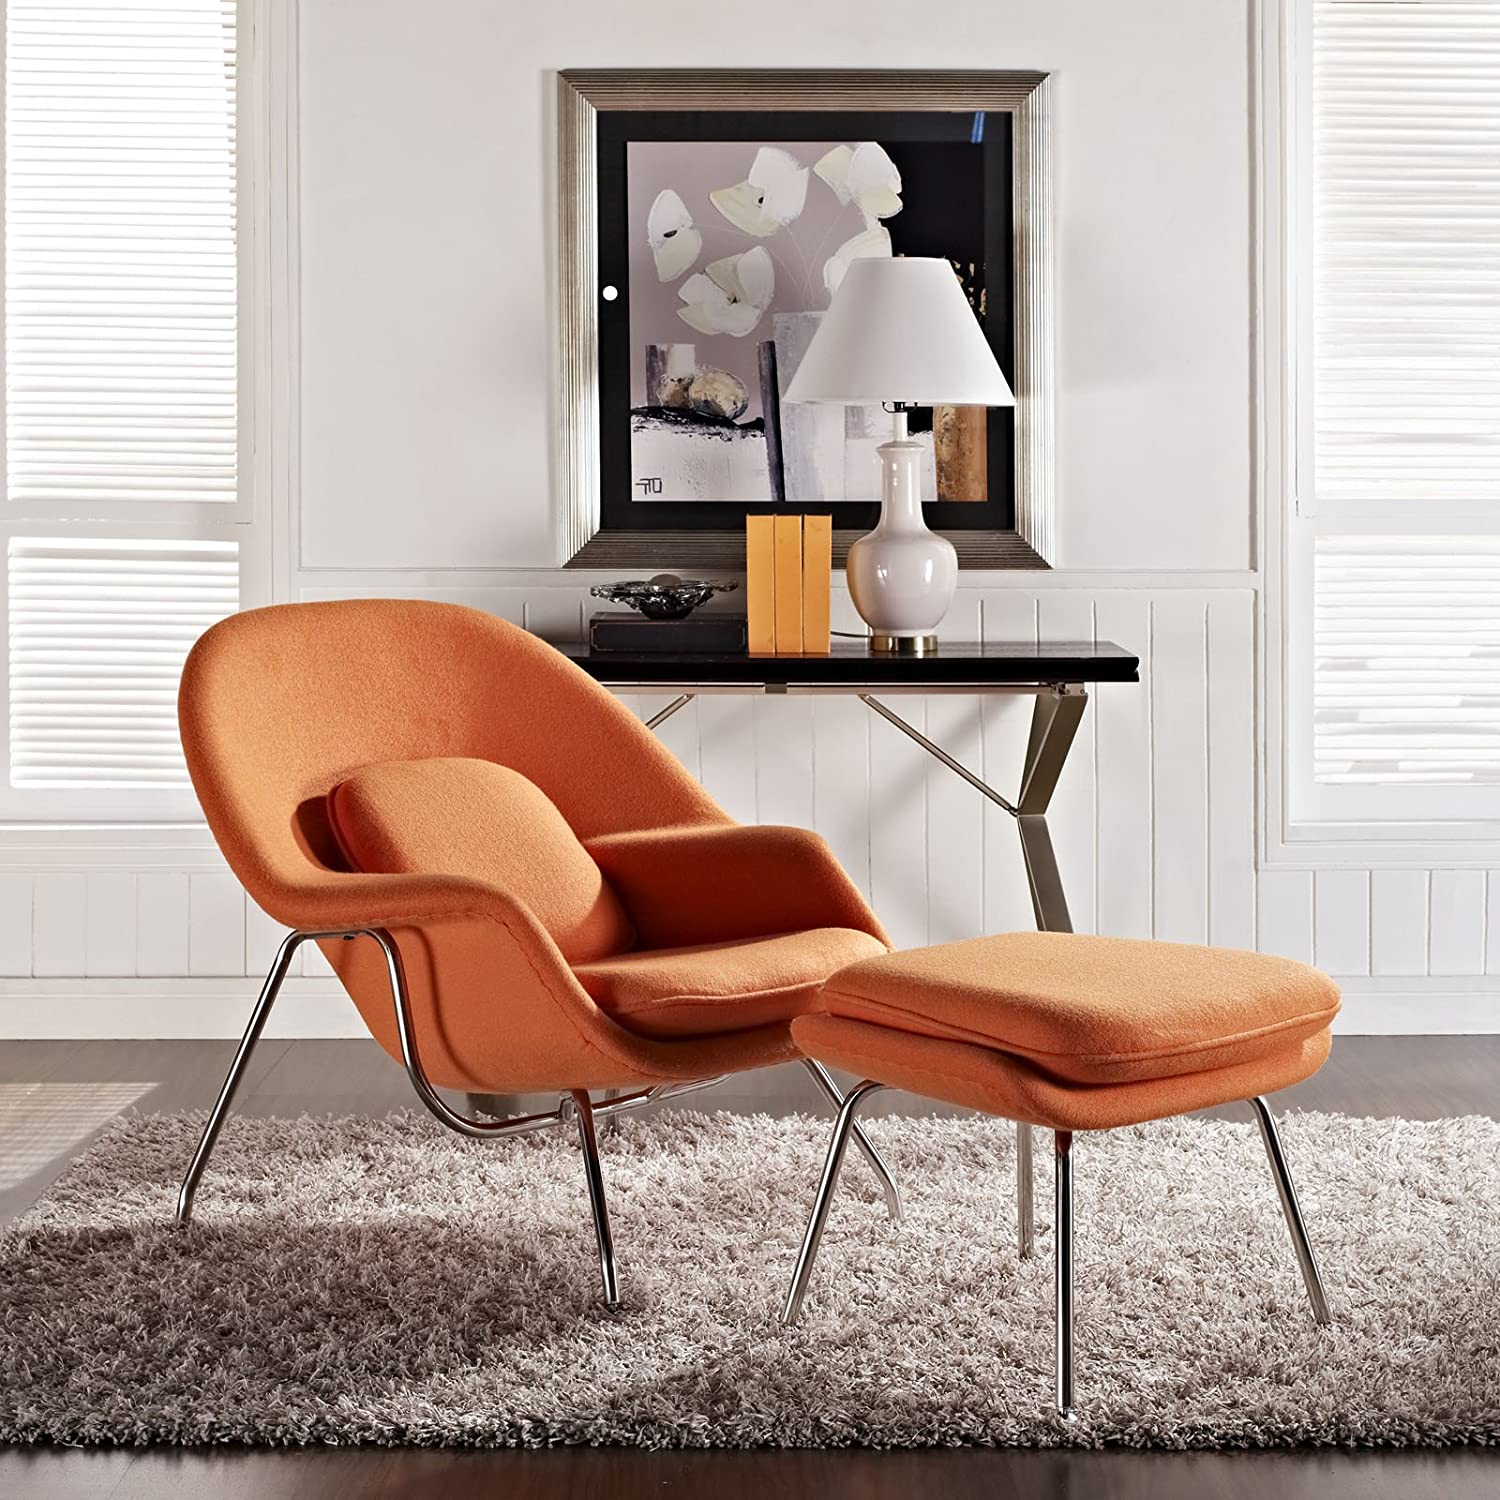 Design Womb Chair amazon com modway eero saarinen style womb chair and ottoman set in orange kitchen dining